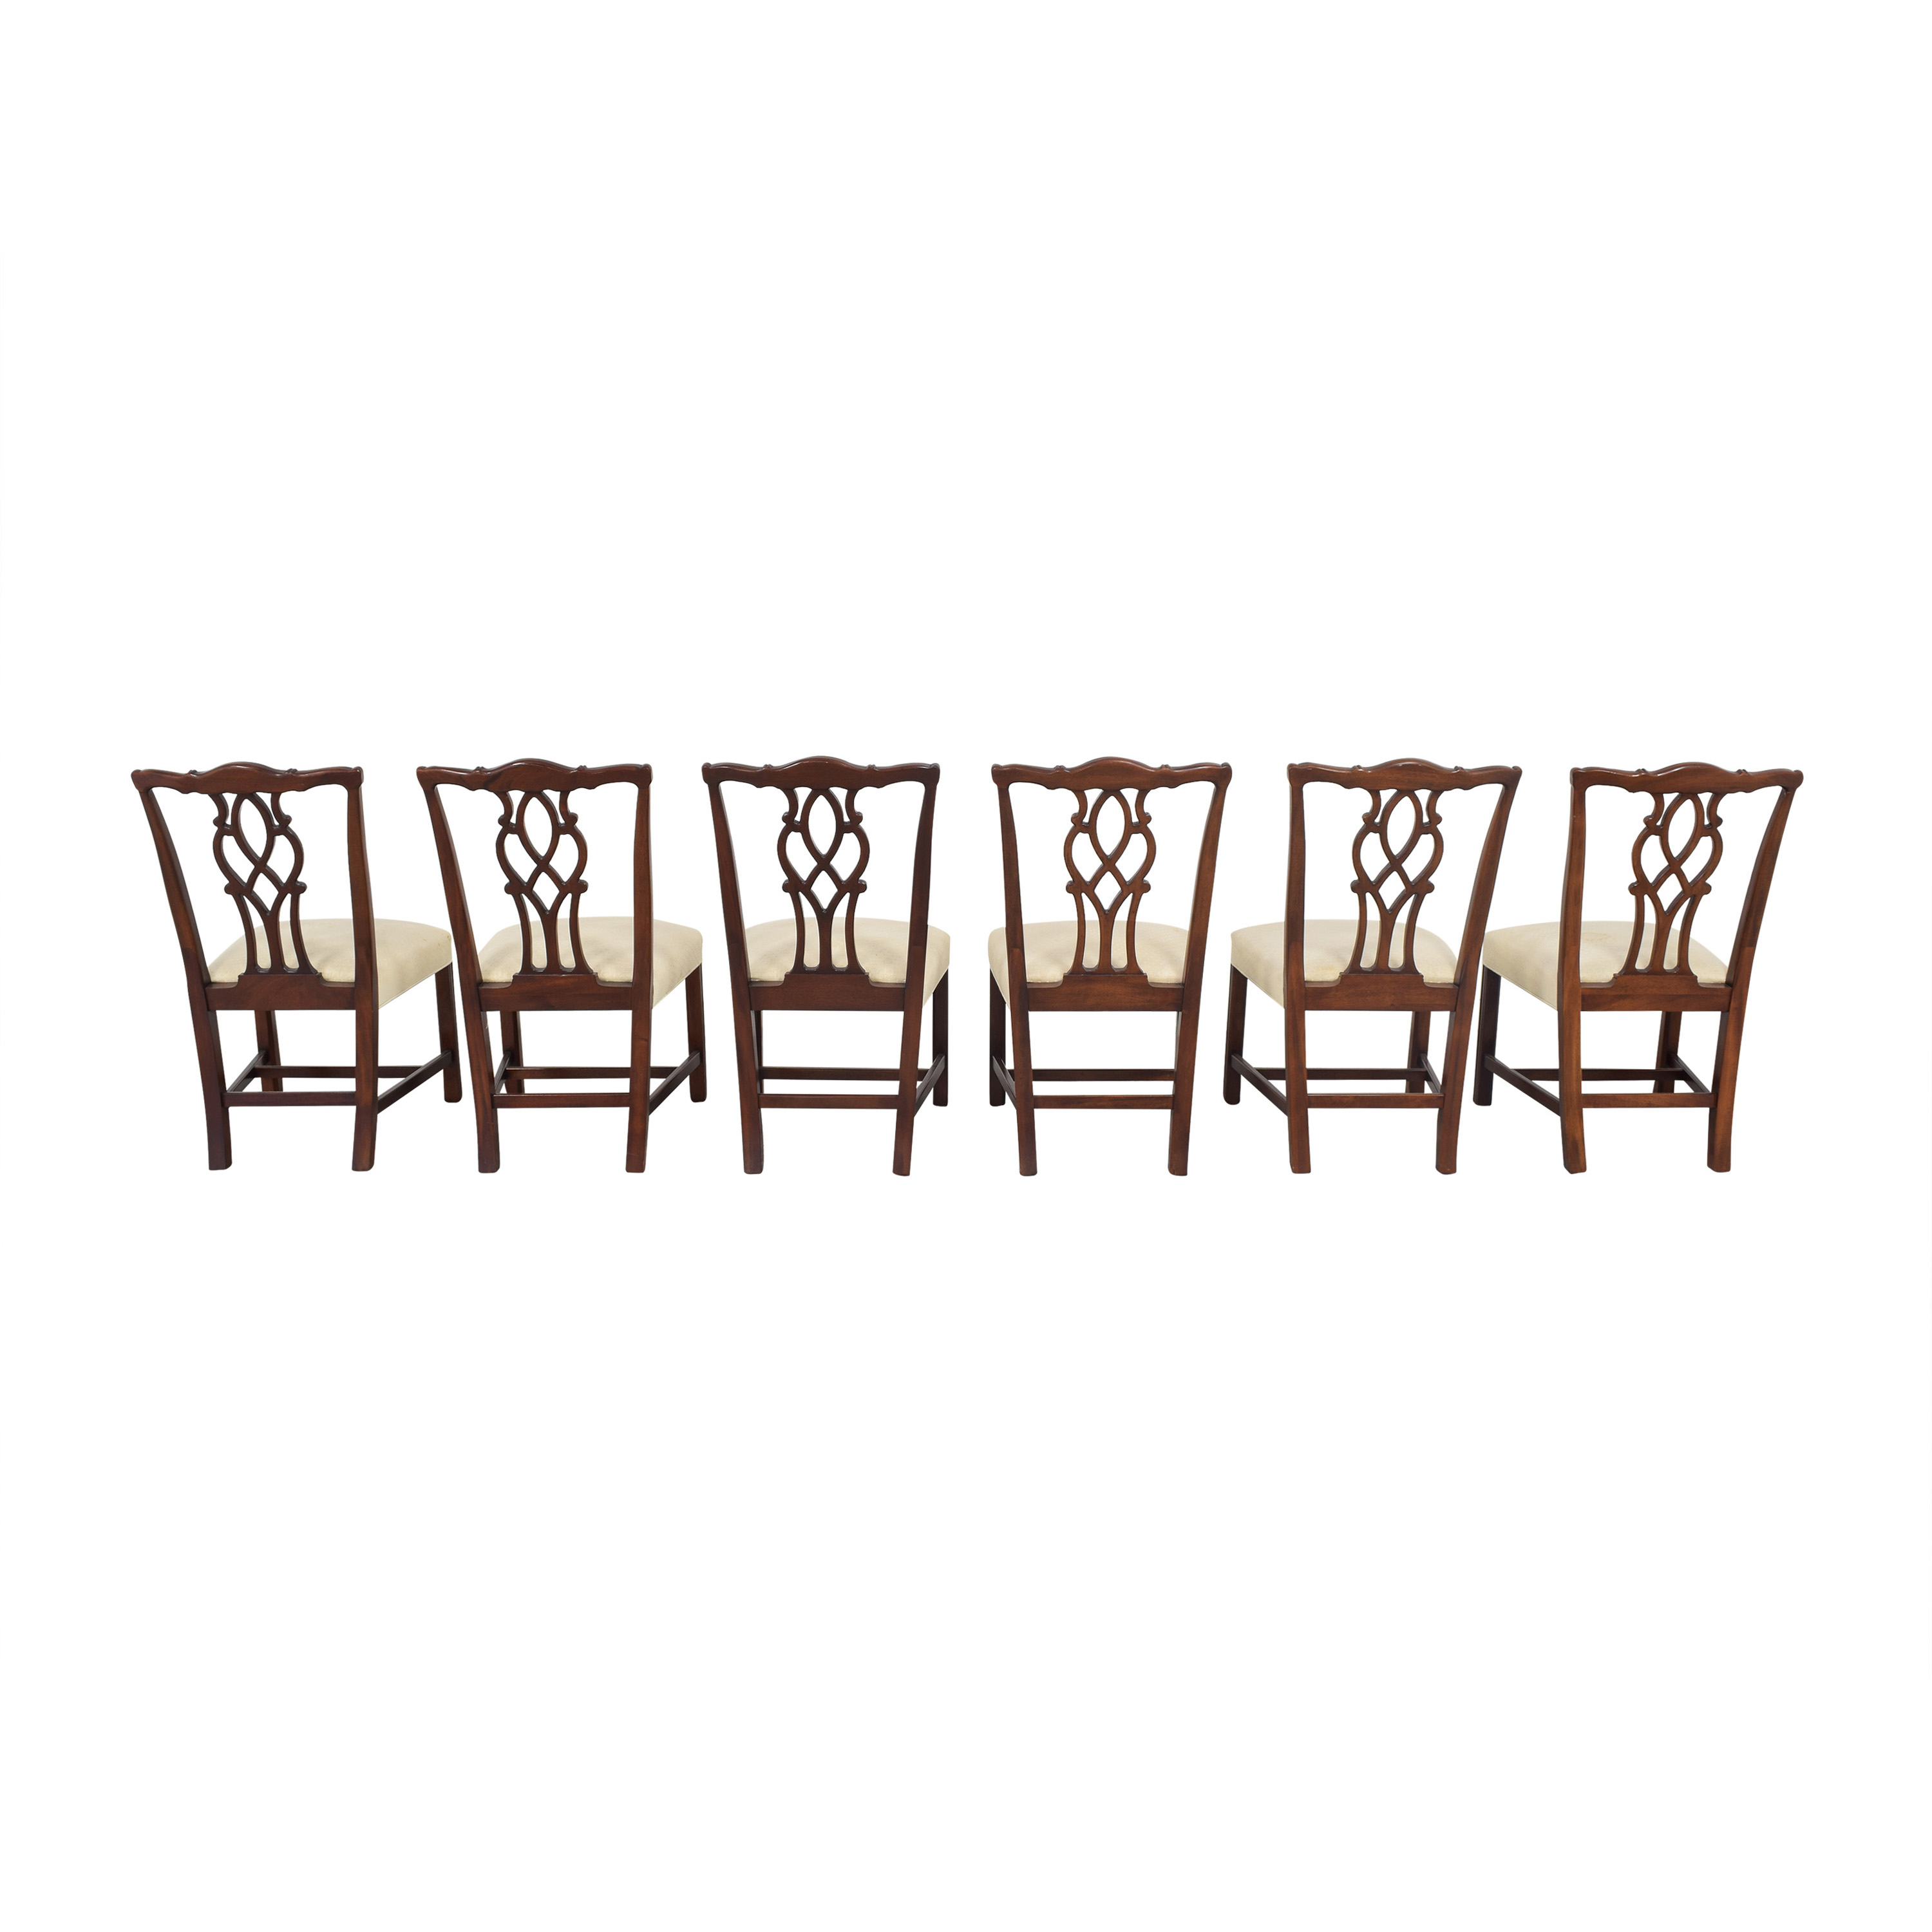 Kindel Kindel Chippendale Dining Side Chairs Dining Chairs